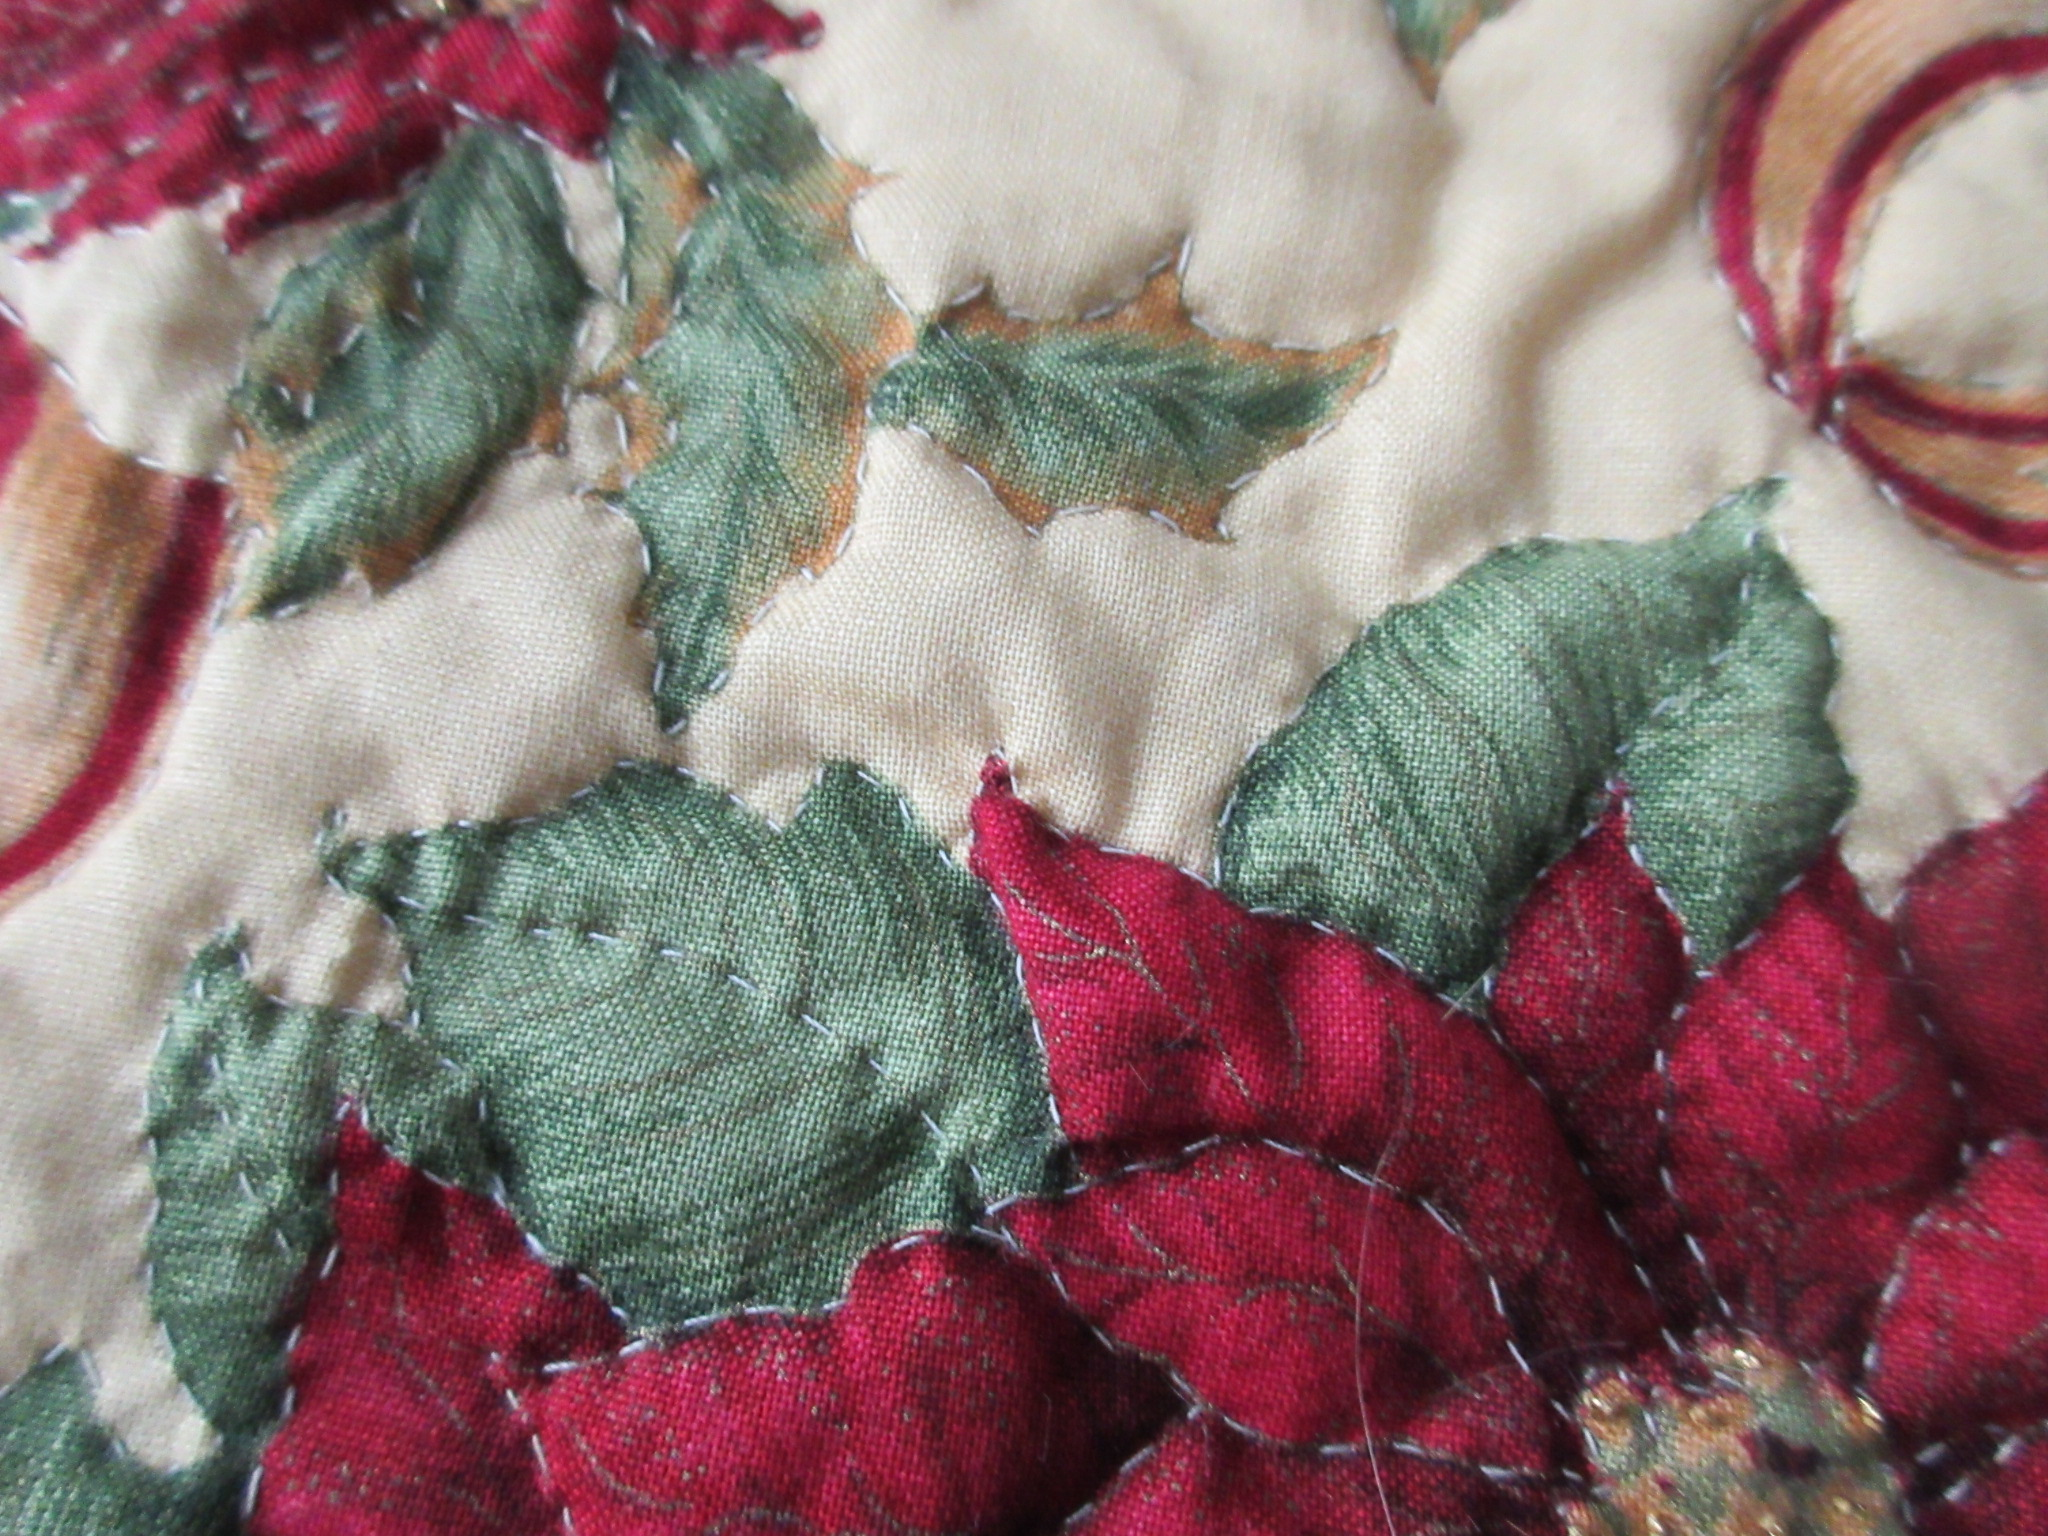 There are gold thread French knots in the centers of each flower (bottom right corner)